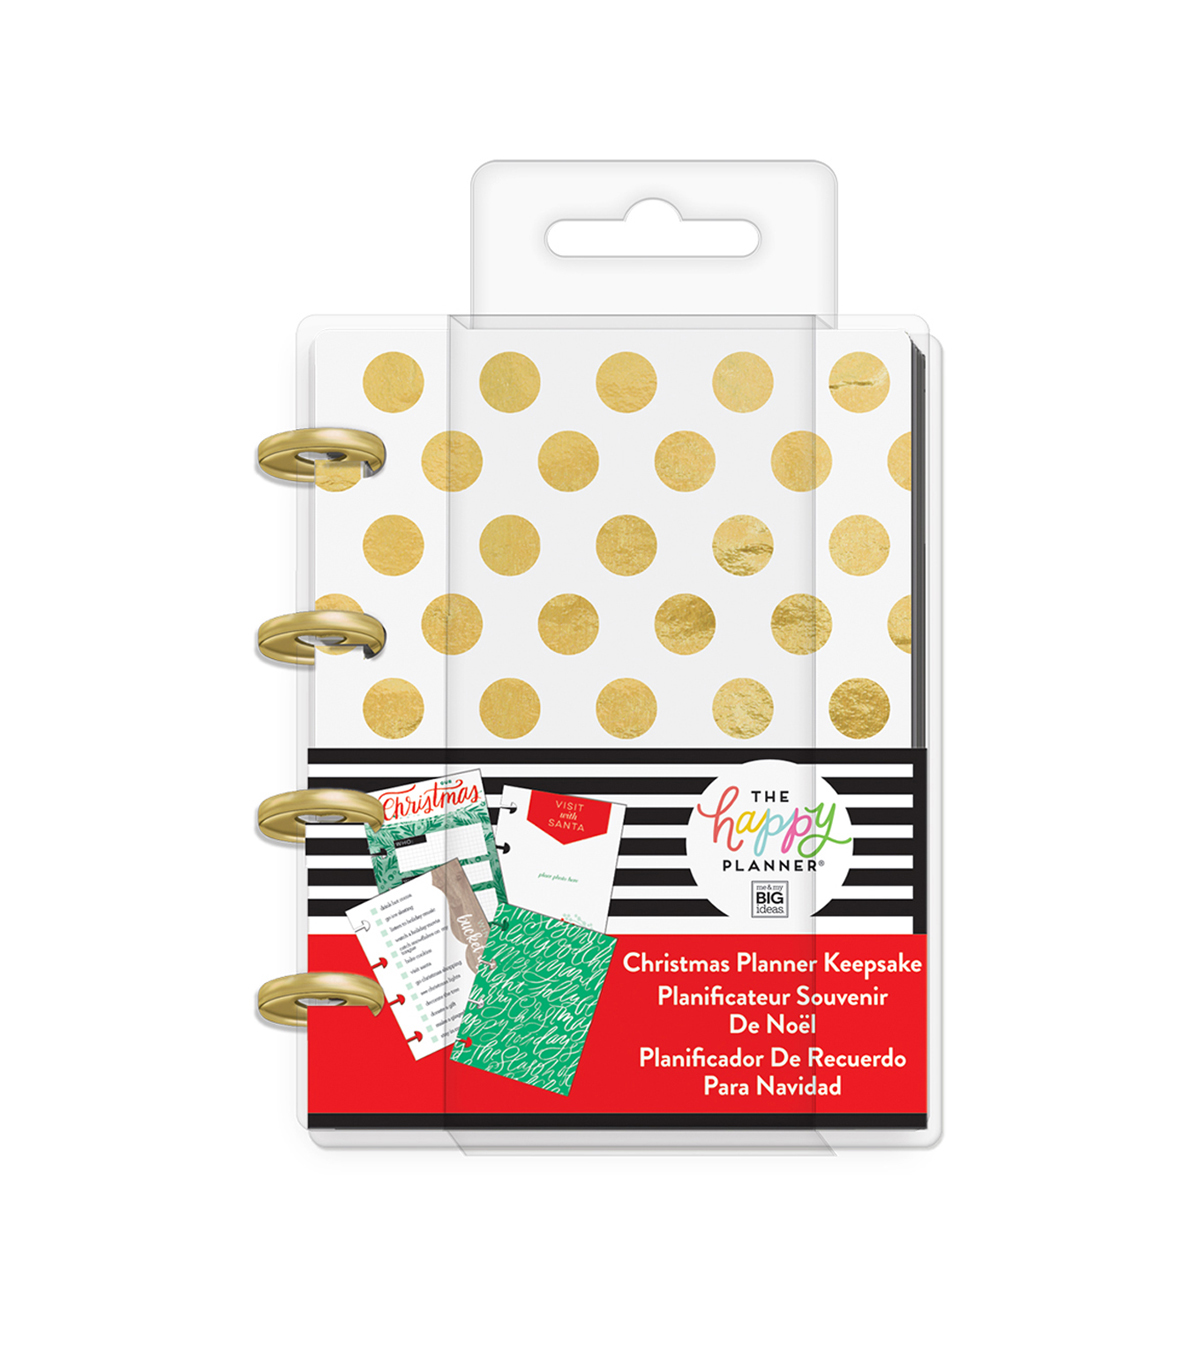 The Happy Planner Christmas Mini Keepsake Planner-Gold Dots